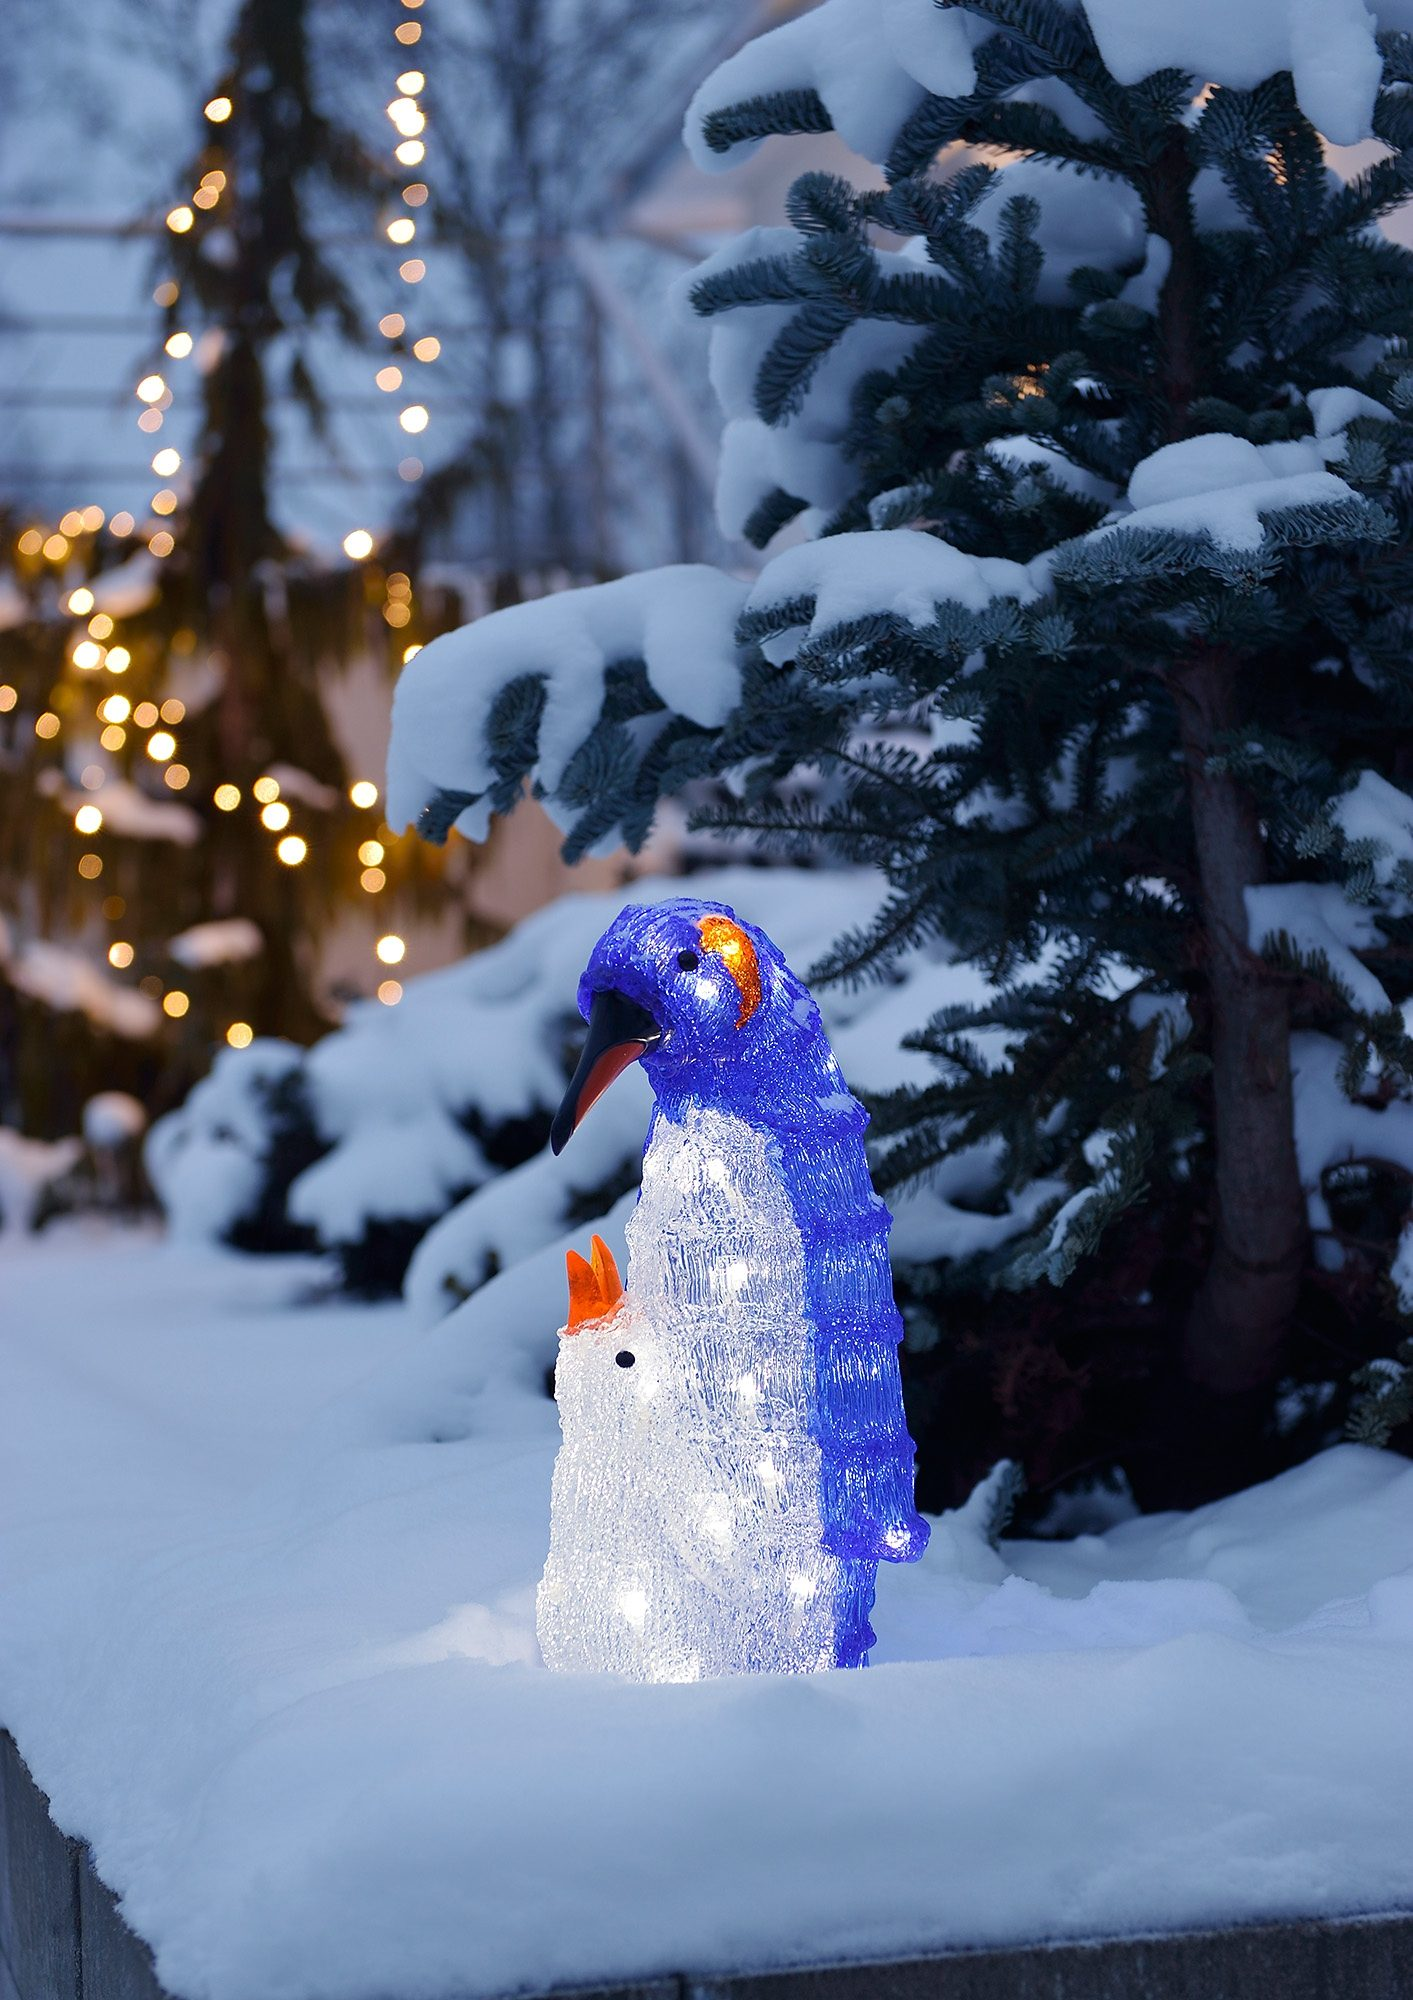 LED Acryl, »Pinguine, Mutter mit Kind«, Konstsmide